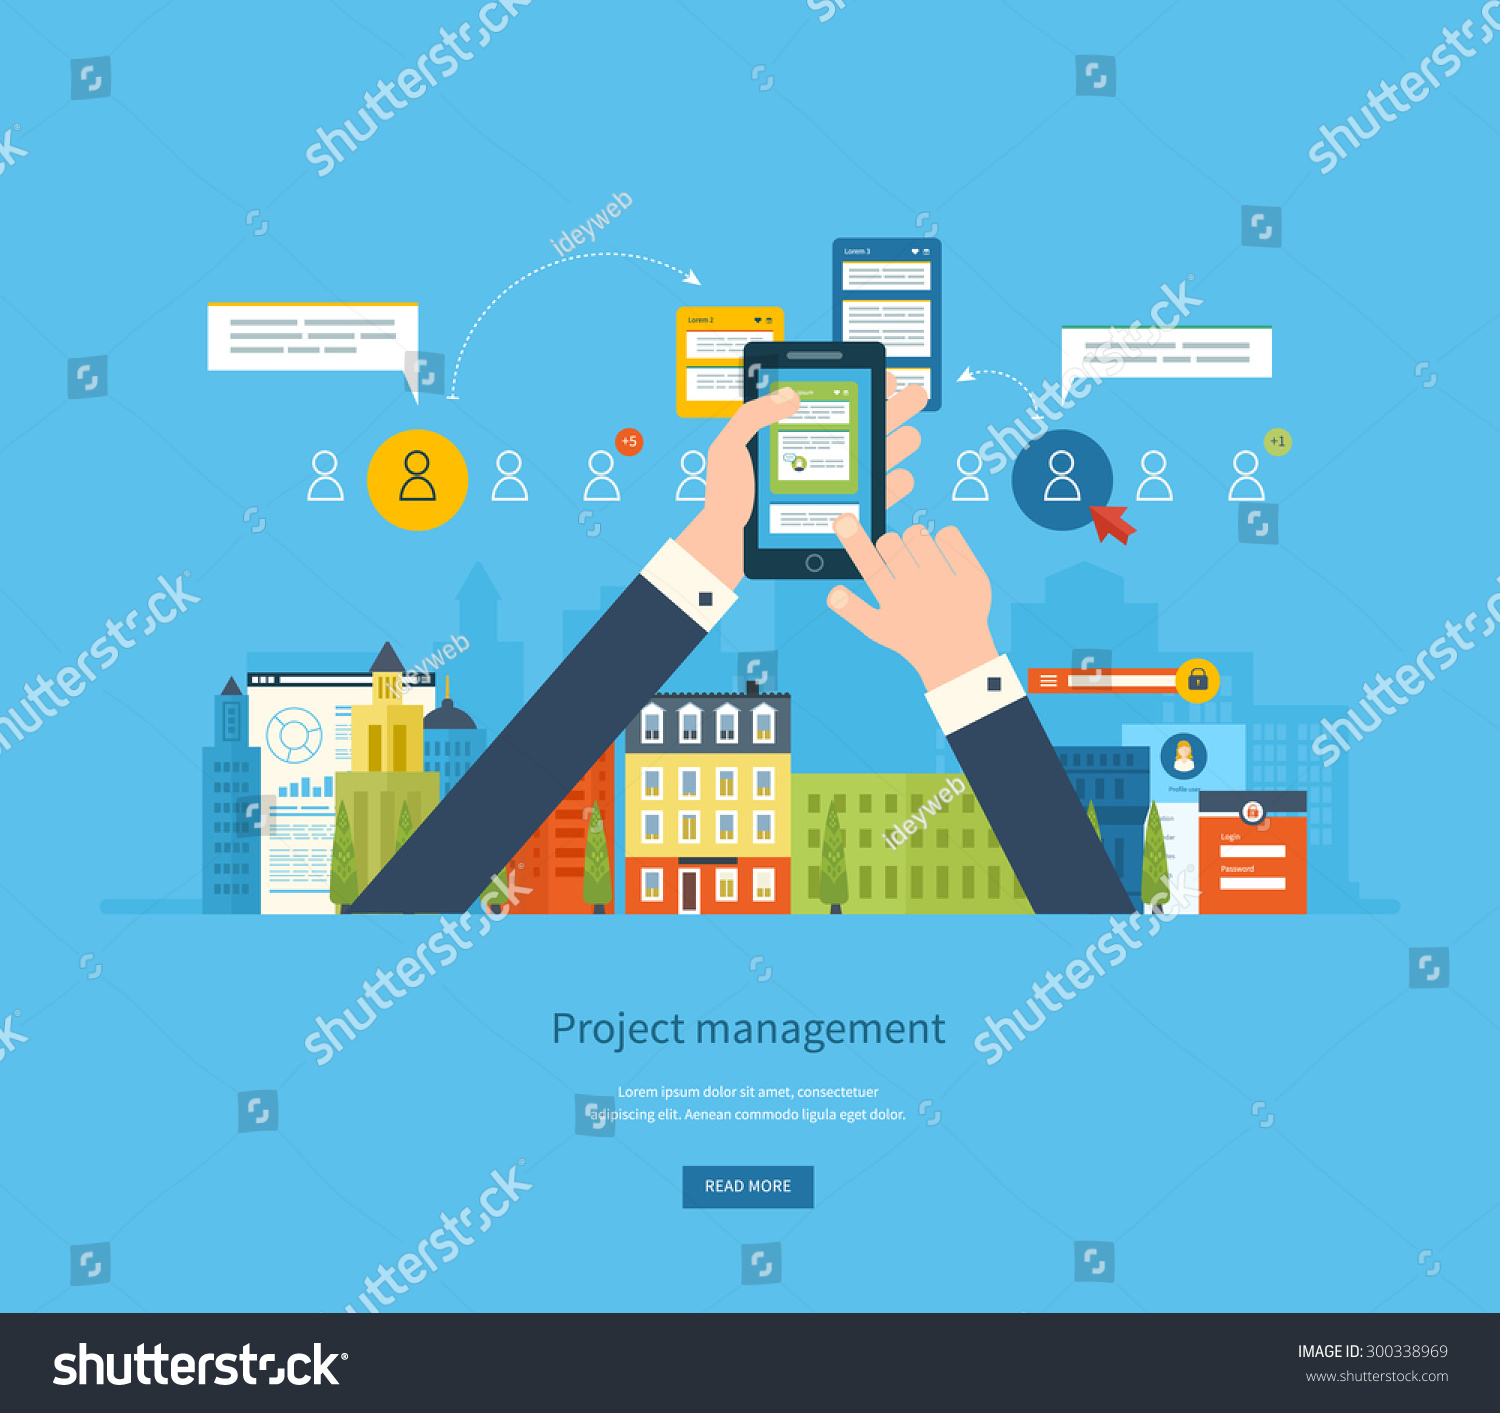 Flat Design Illustration Concepts For Business Analysis And Planning Consulting Team Work